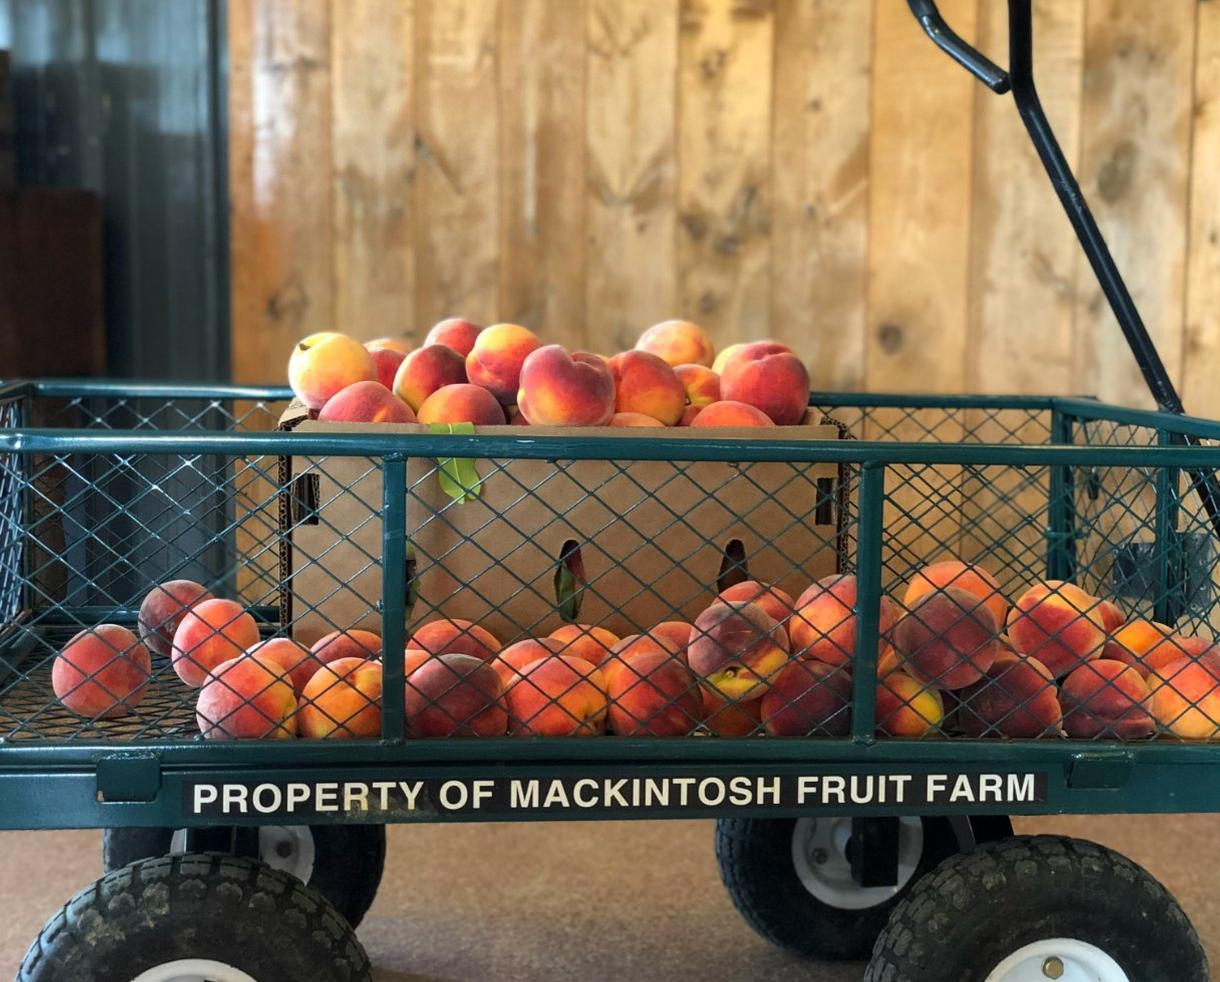 THIS WEEKEND ONLY! Two Pecks of Pick-Your-Own Peaches at Mackintosh Fruit Farm